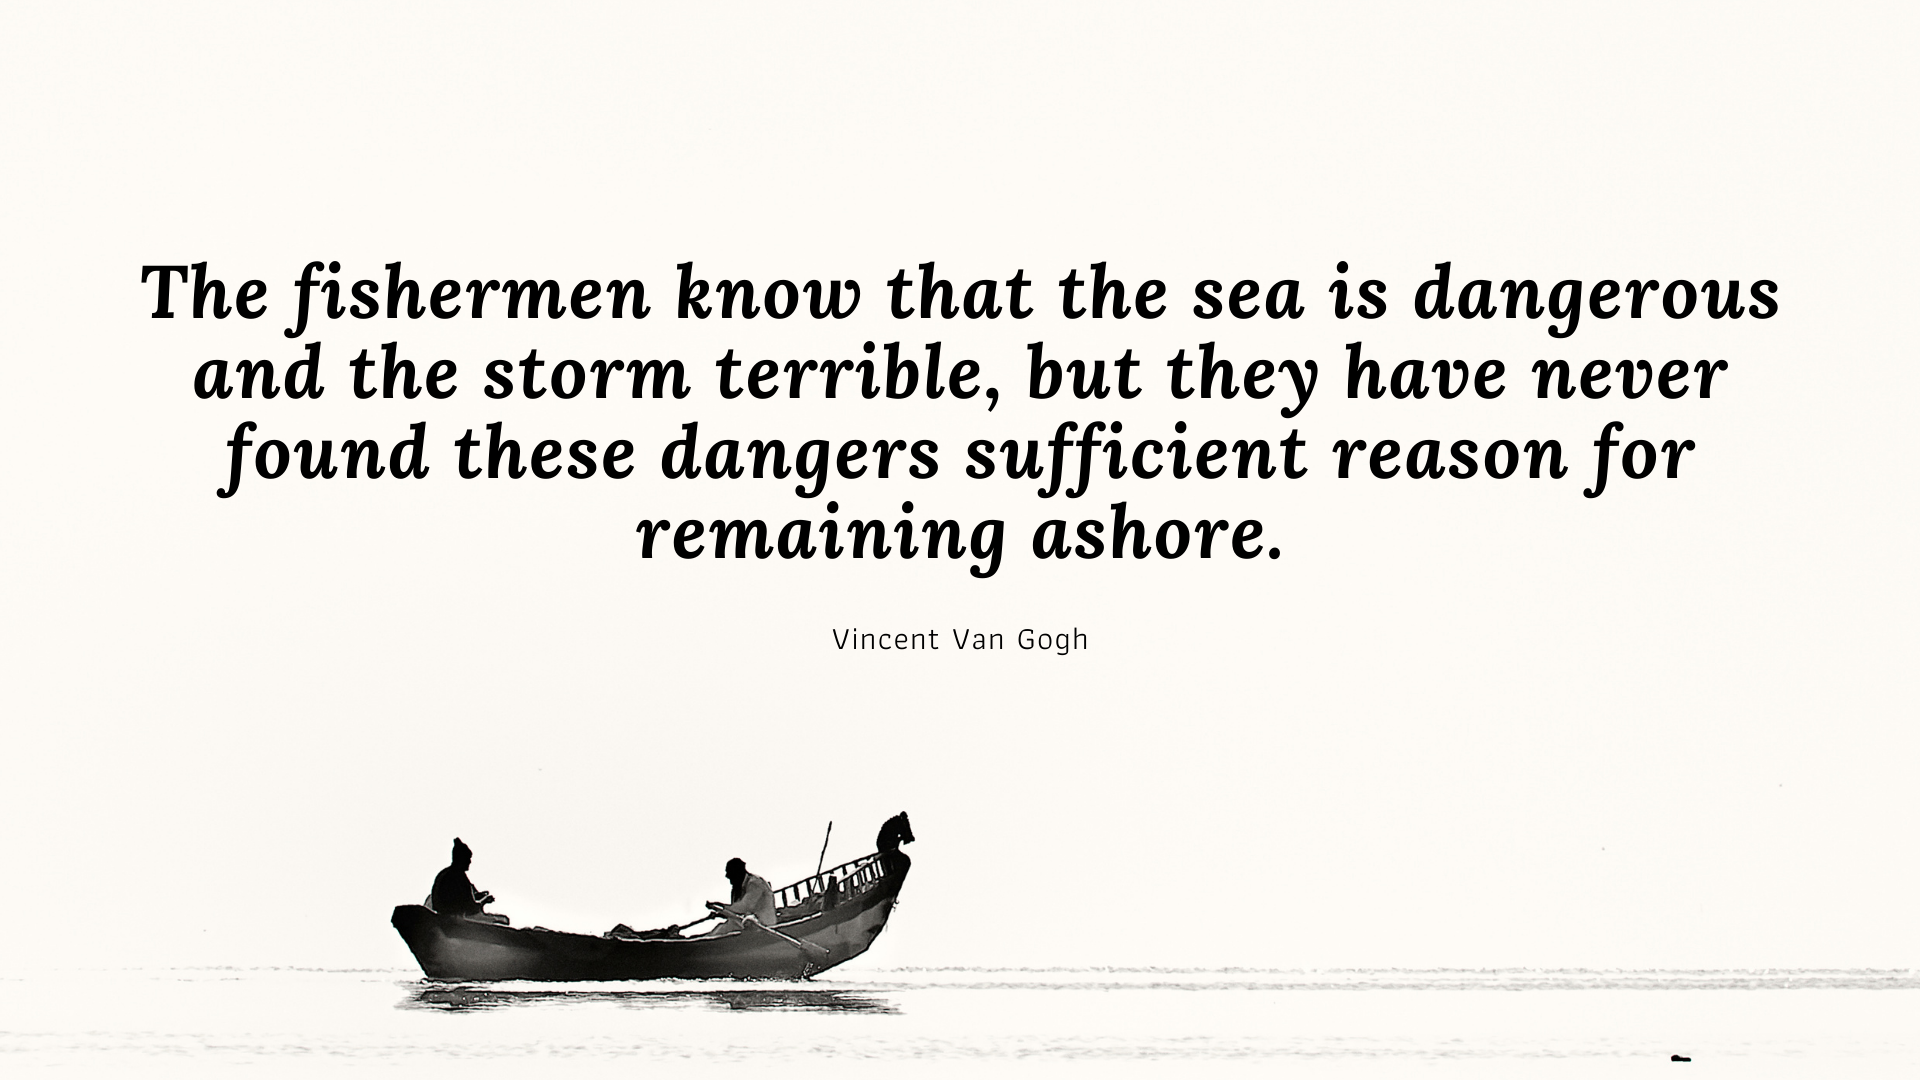 The fishermen know that the sea is dangerous and the storm terrible, but they have never found these dangers sufficient reason for remaining ashore. – Vincent Van Gogh[1920×1080]